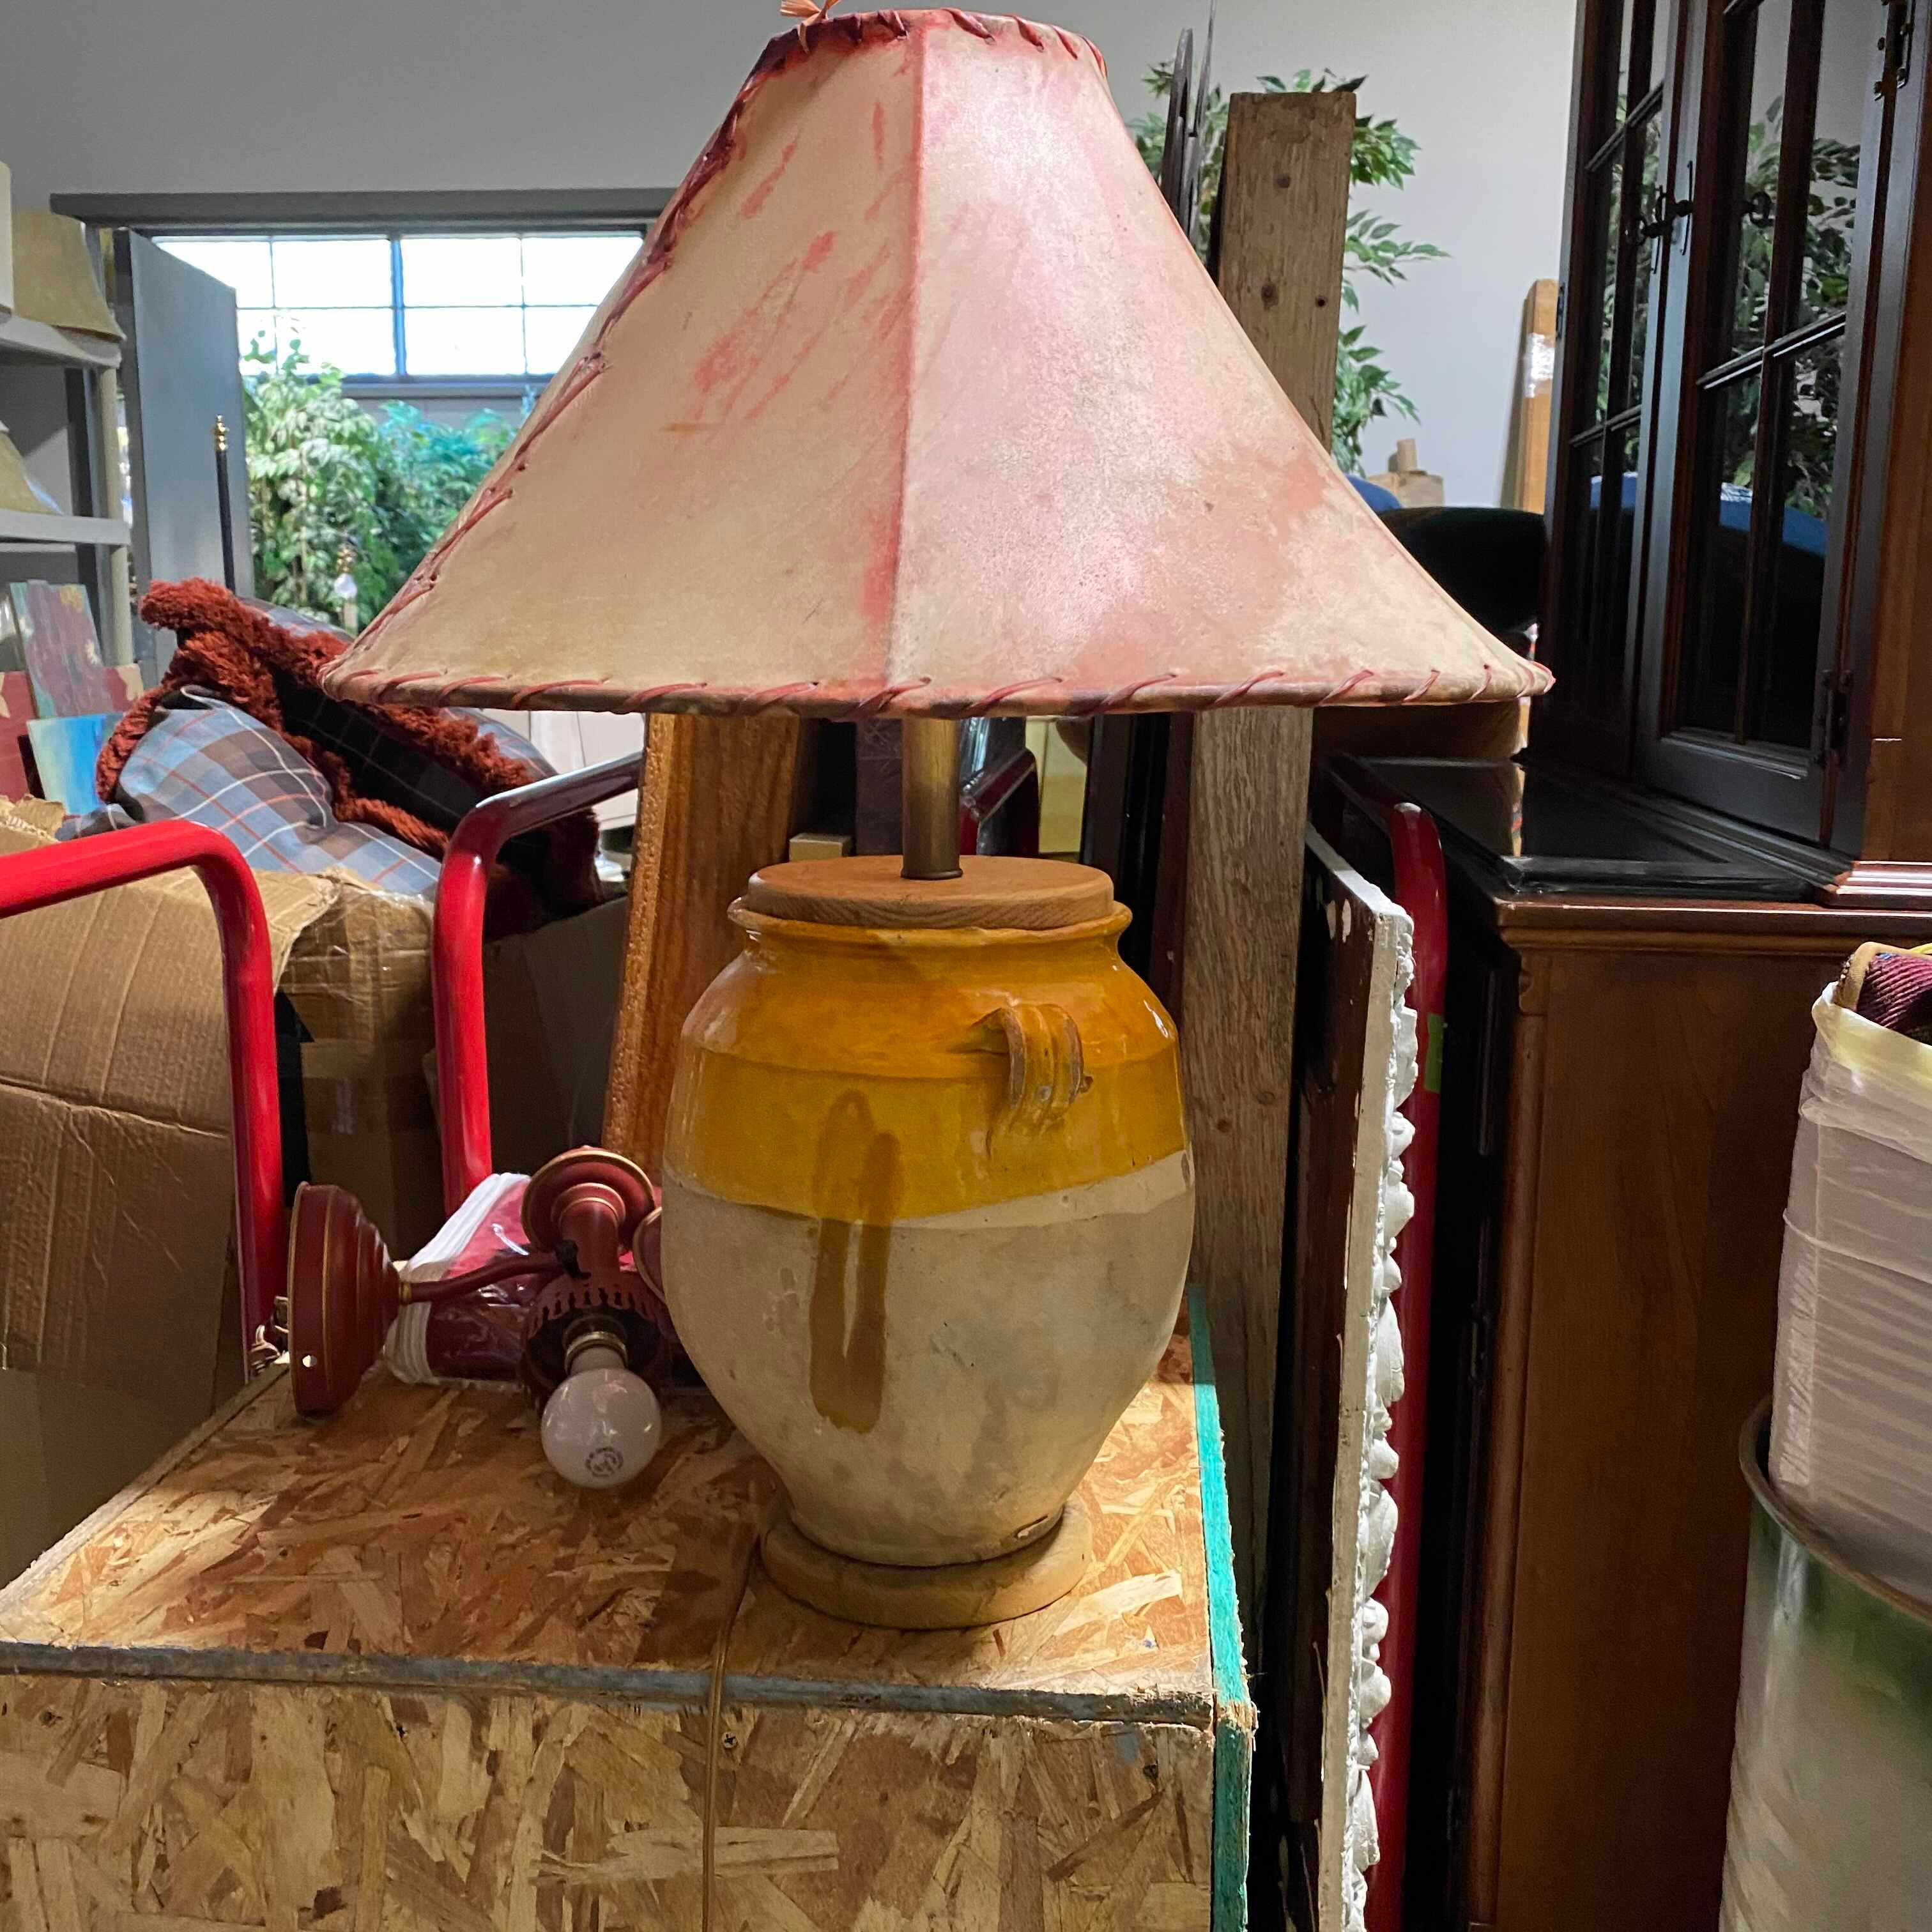 Gold and Tan Ceramic Pot with Hide Shade Table lamp